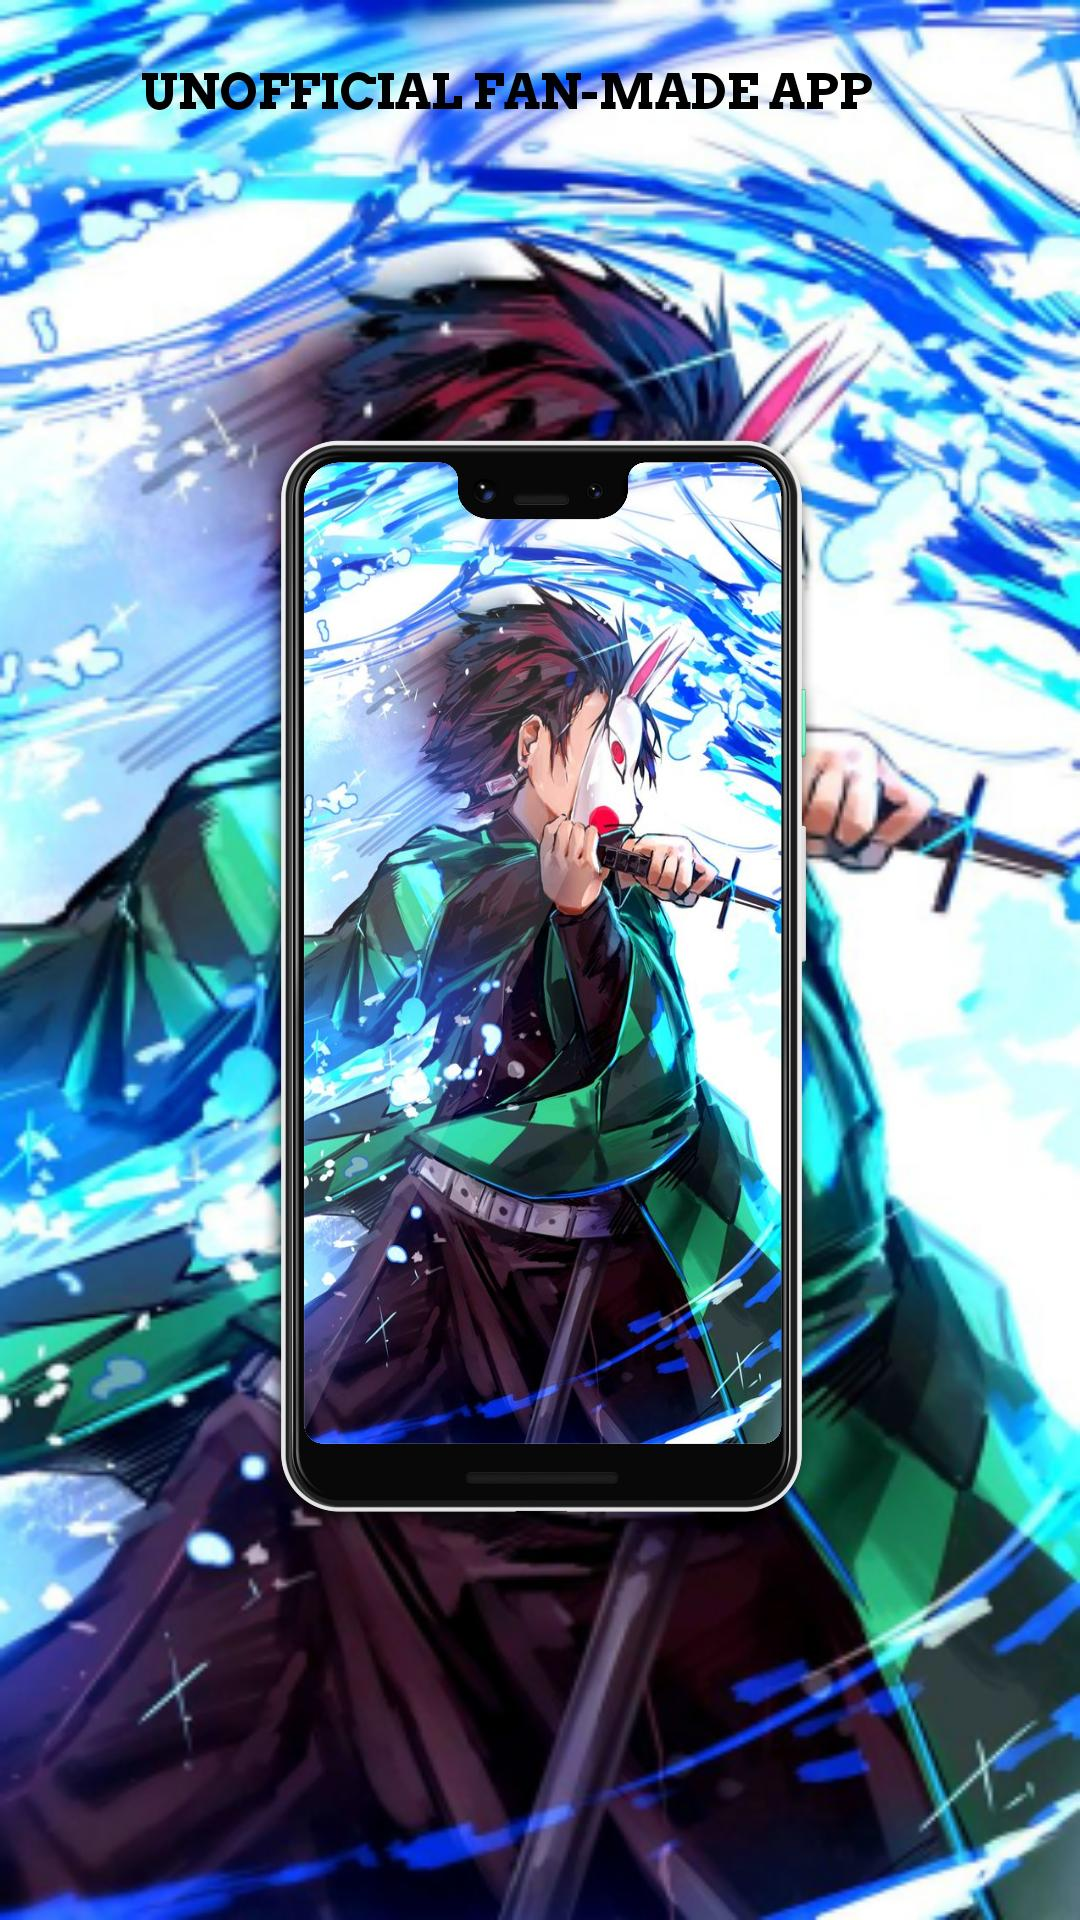 HD Wallpaper of Kimetsu no Yaiba - Demon Slayer pour Android - Téléchargez l'APK